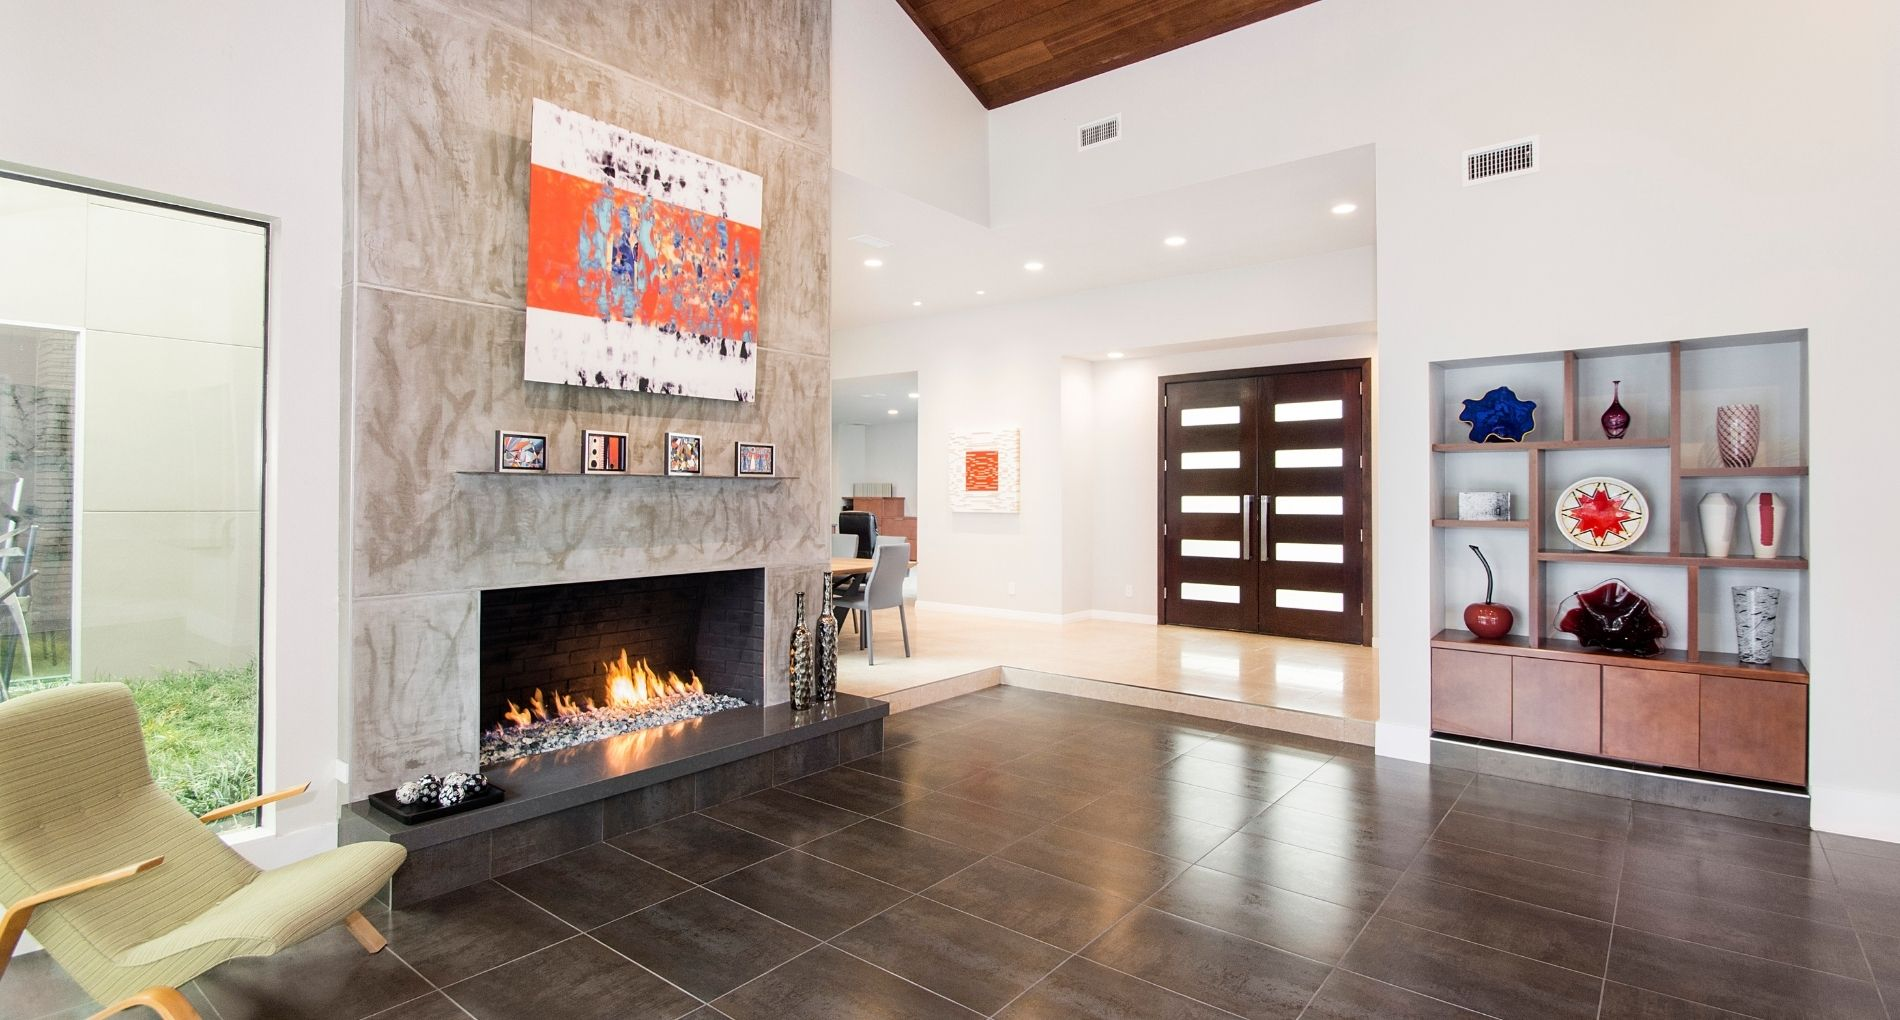 alair-homes-plano-club-oak-whole-house-remodel-feature-imafe